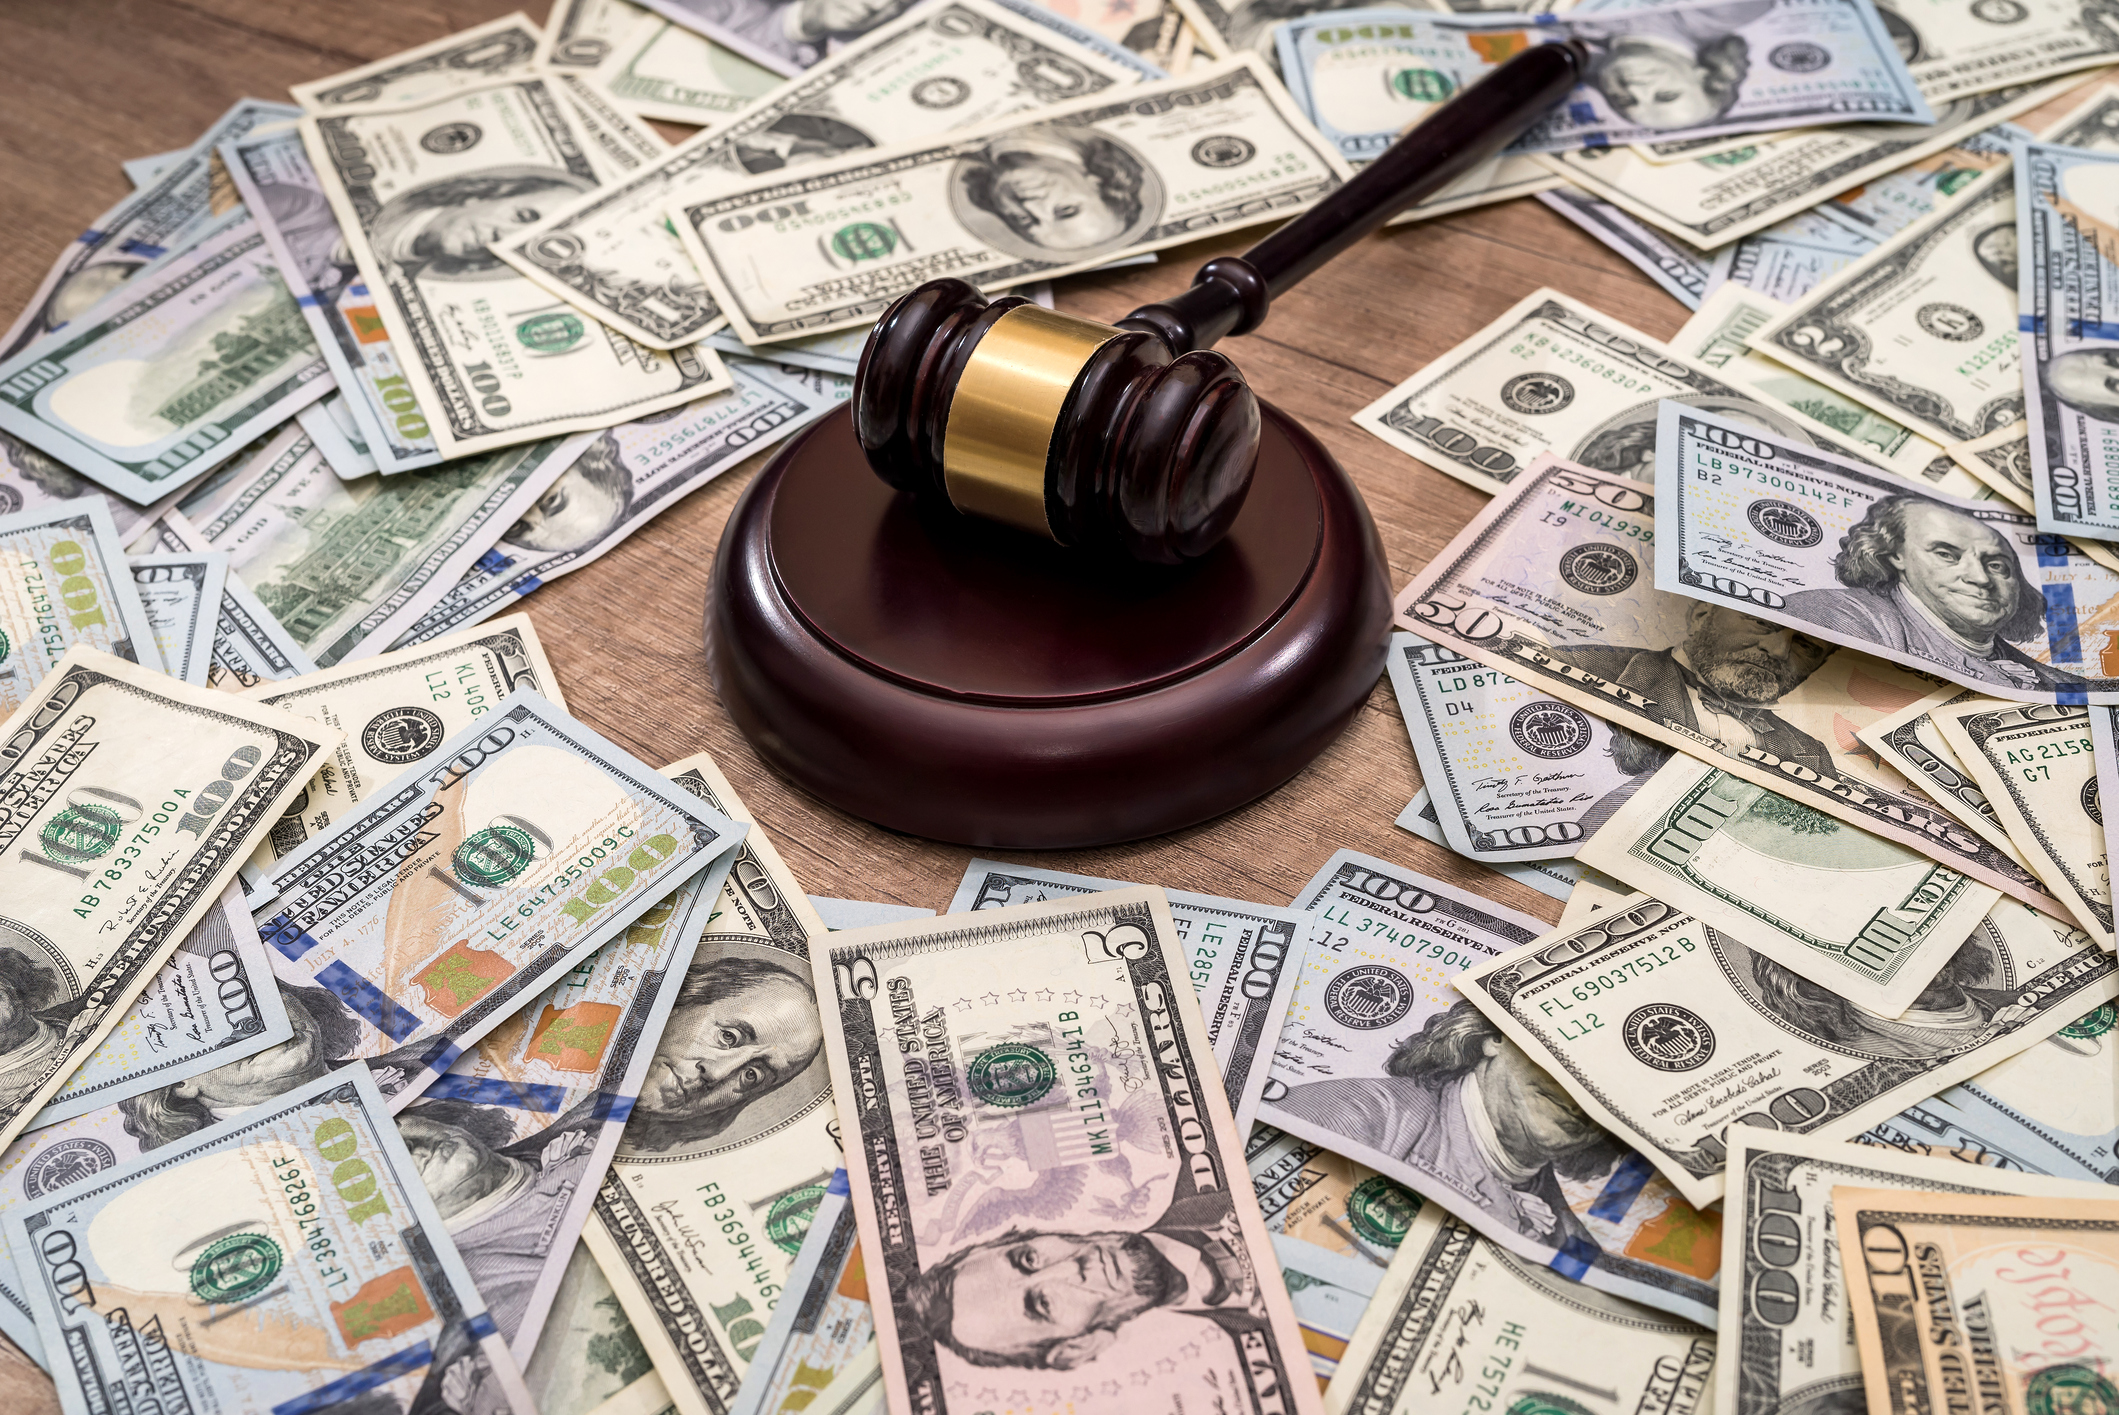 Vereit to Settle Four ARCP Lawsuits for $42 5 Million - The DI Wire